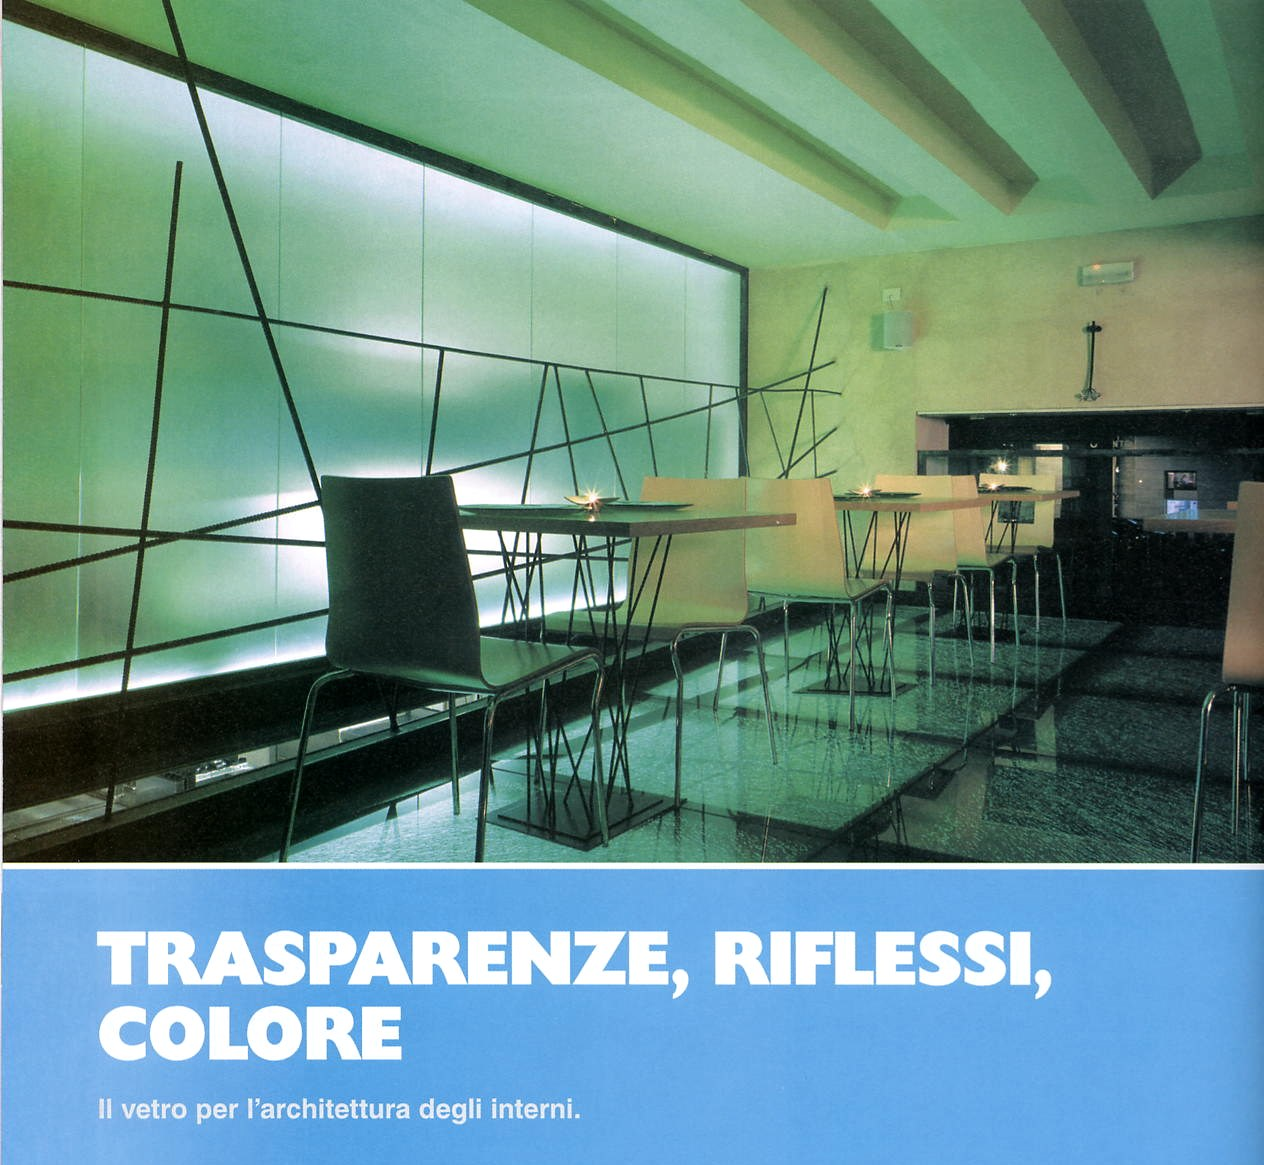 Transparency, effects, colors - Alessandro Villa architect